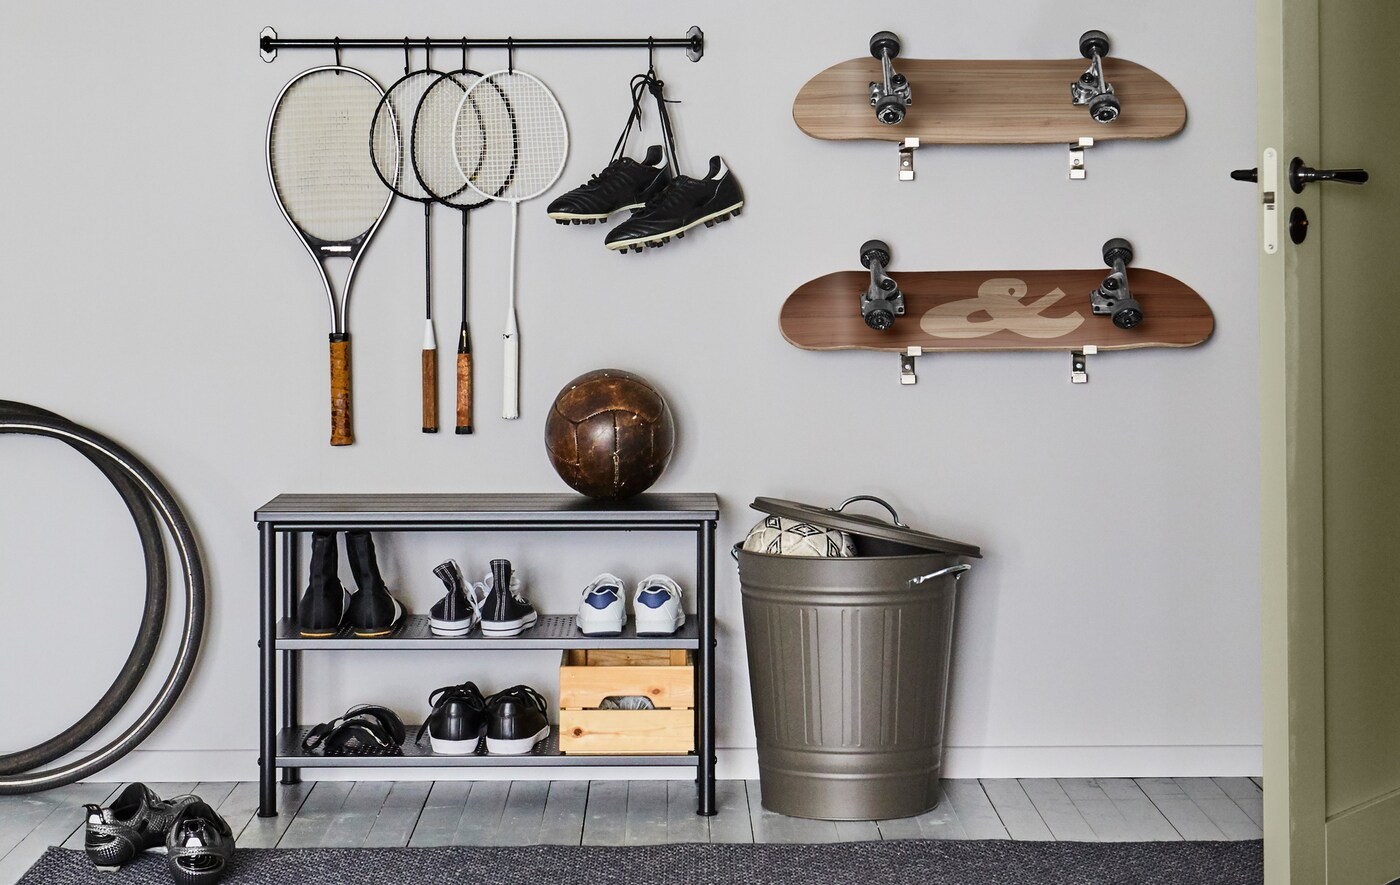 Home storage ideas for sports equipment